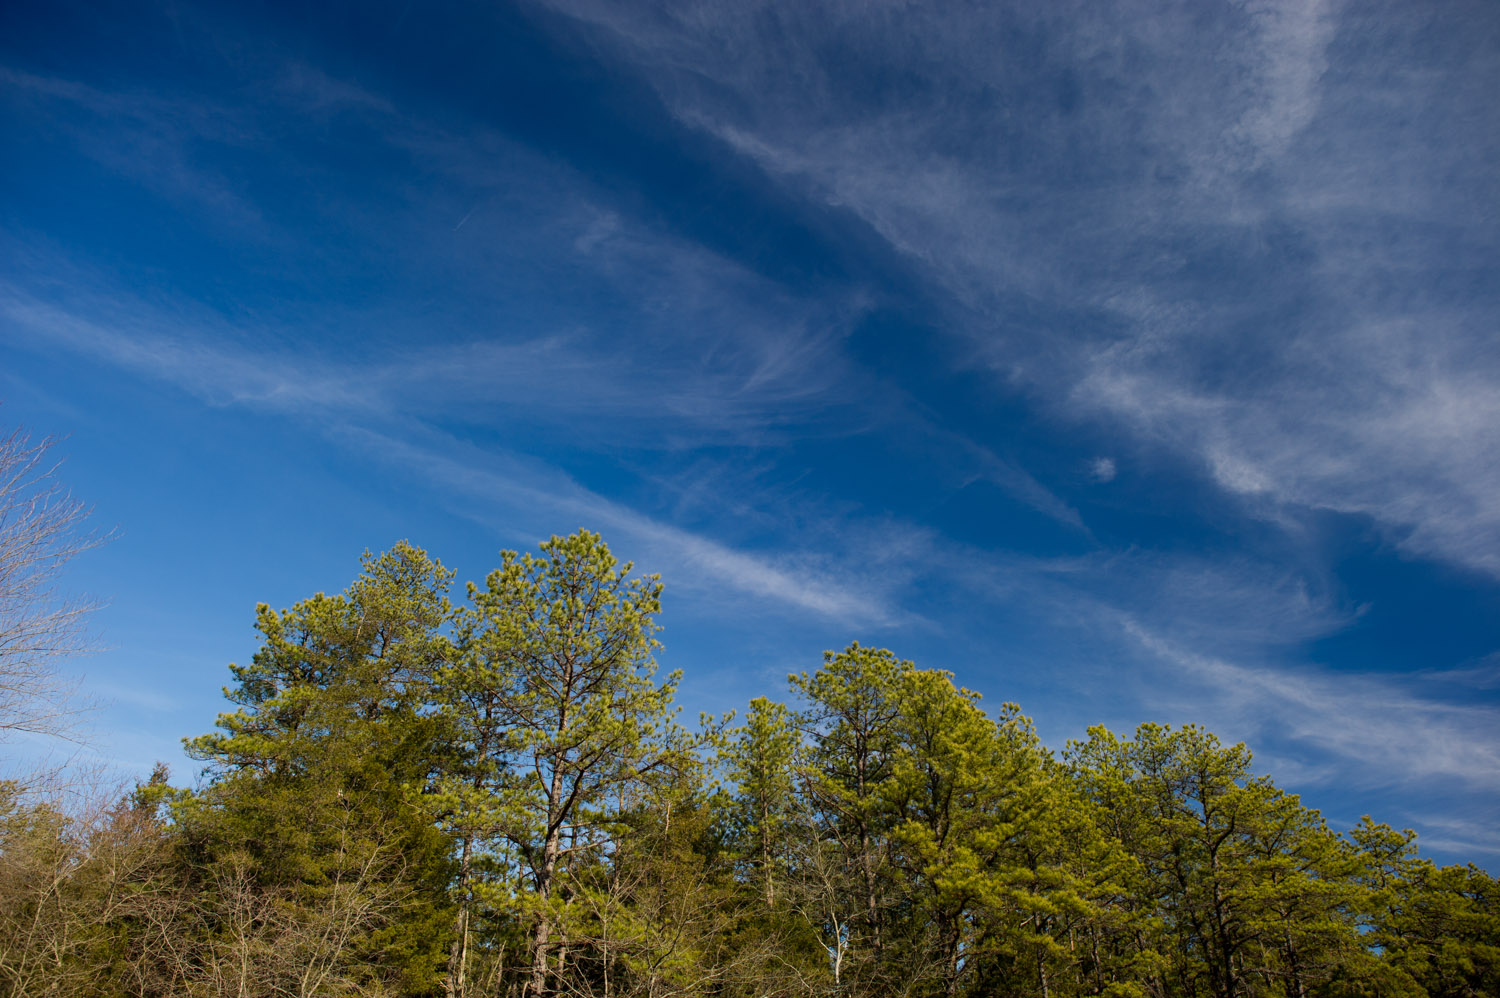 Taken at Wharton State Forest in the NJ Pine Barrens.